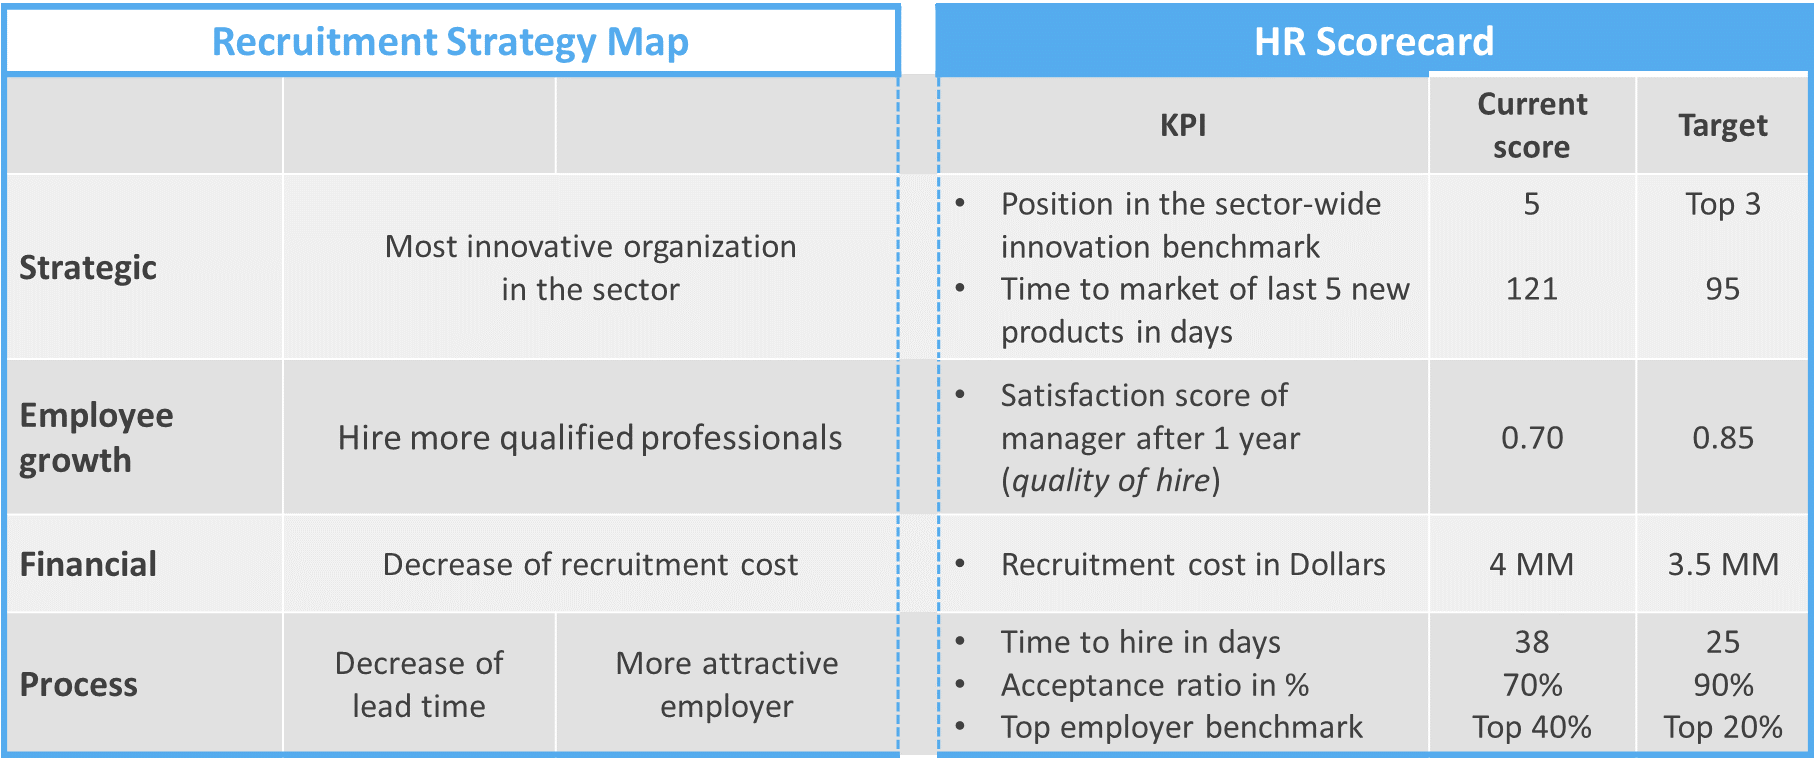 HR Key Performance Indicators: An In-depth Explanation with Examples